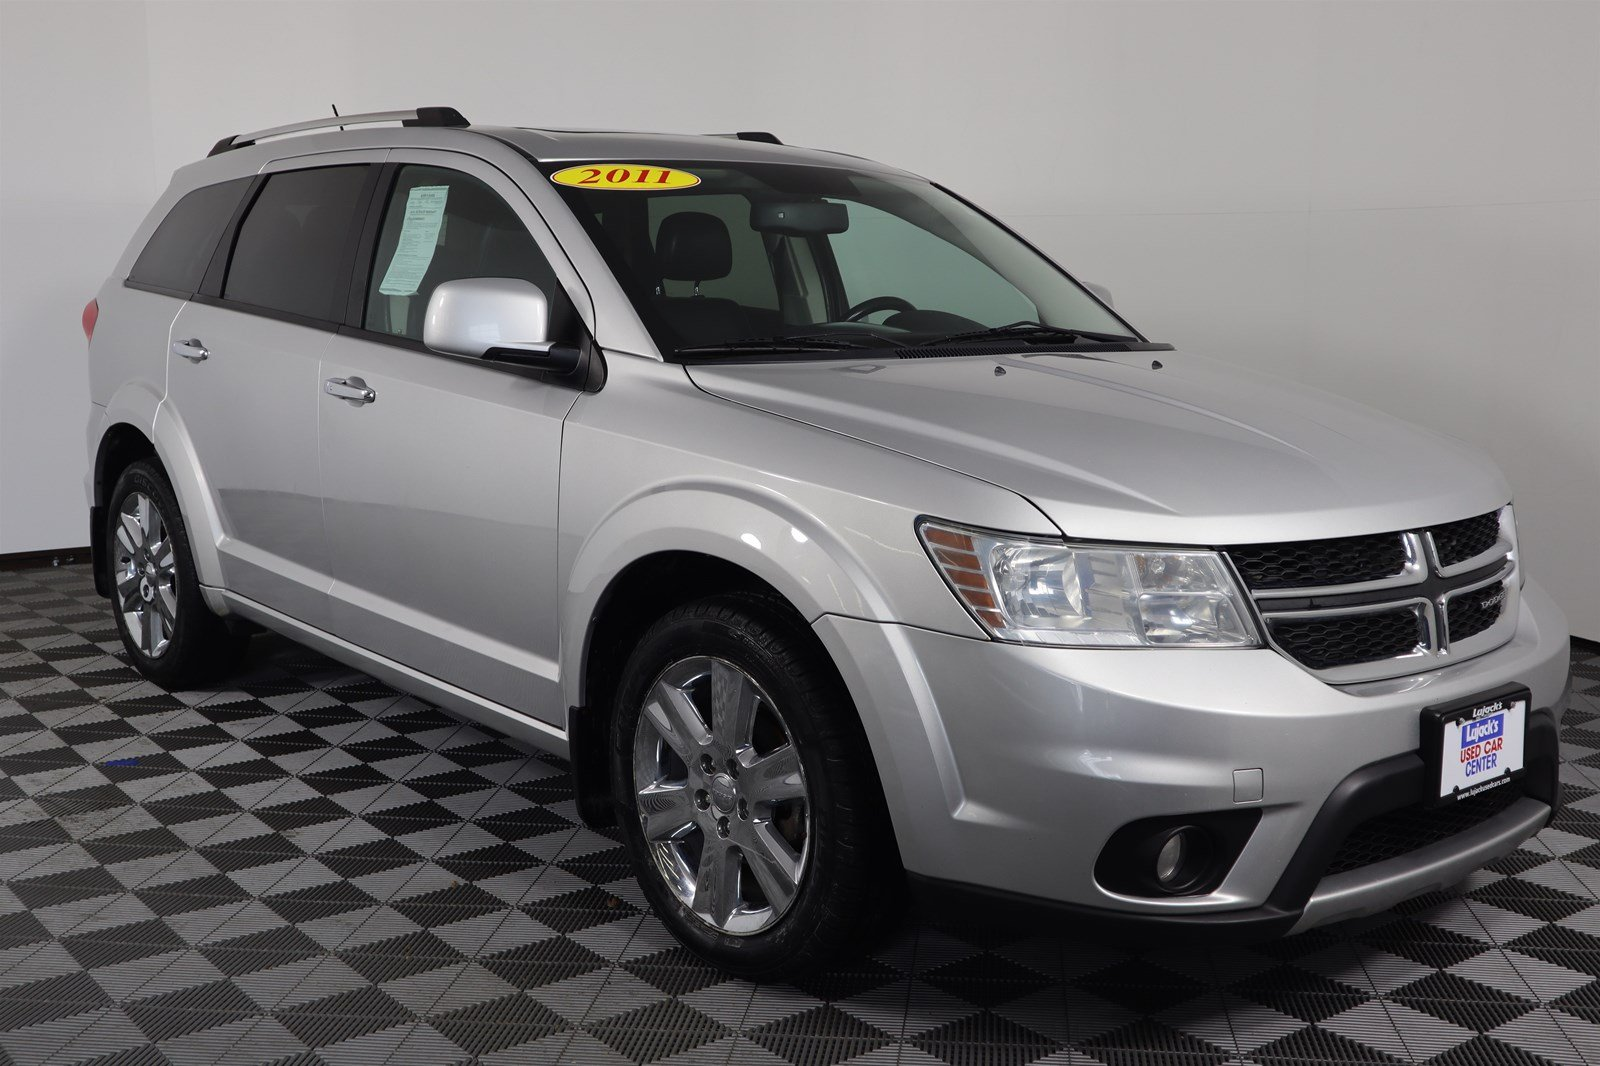 Pre-Owned 2011 Dodge Journey R/T